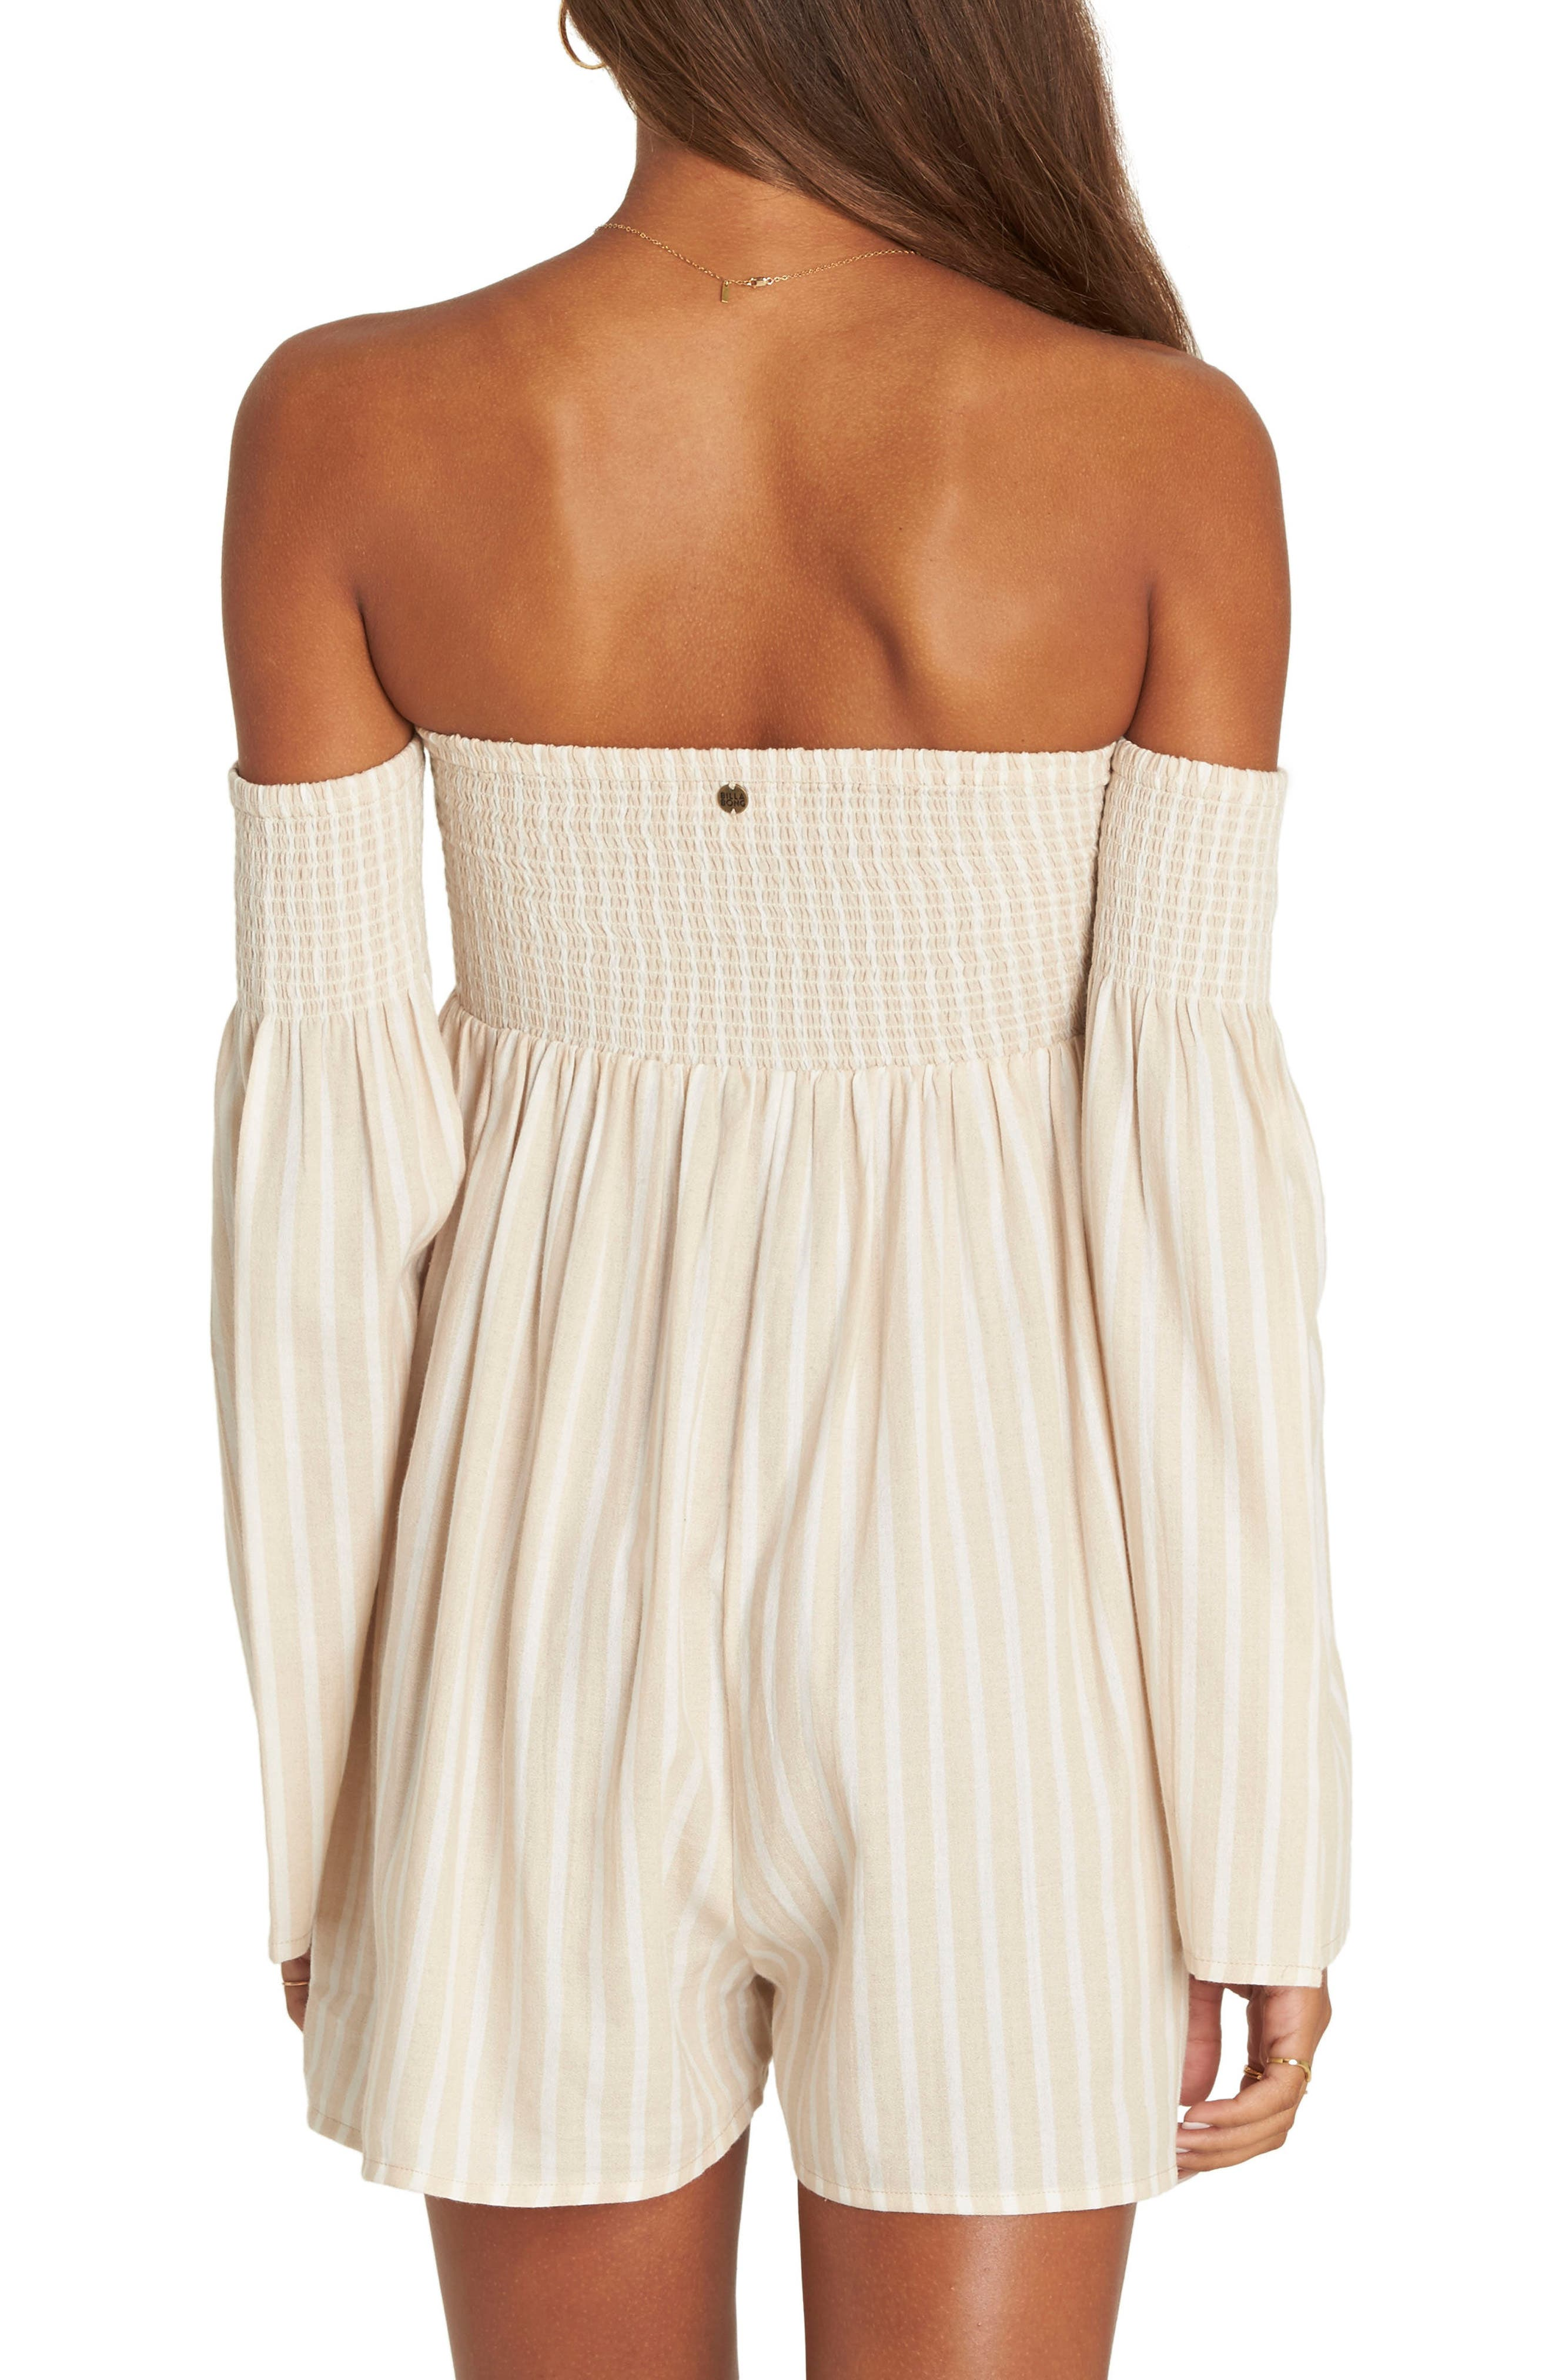 Fox on the Run Off the Shoulder Romper,                             Alternate thumbnail 2, color,                             250